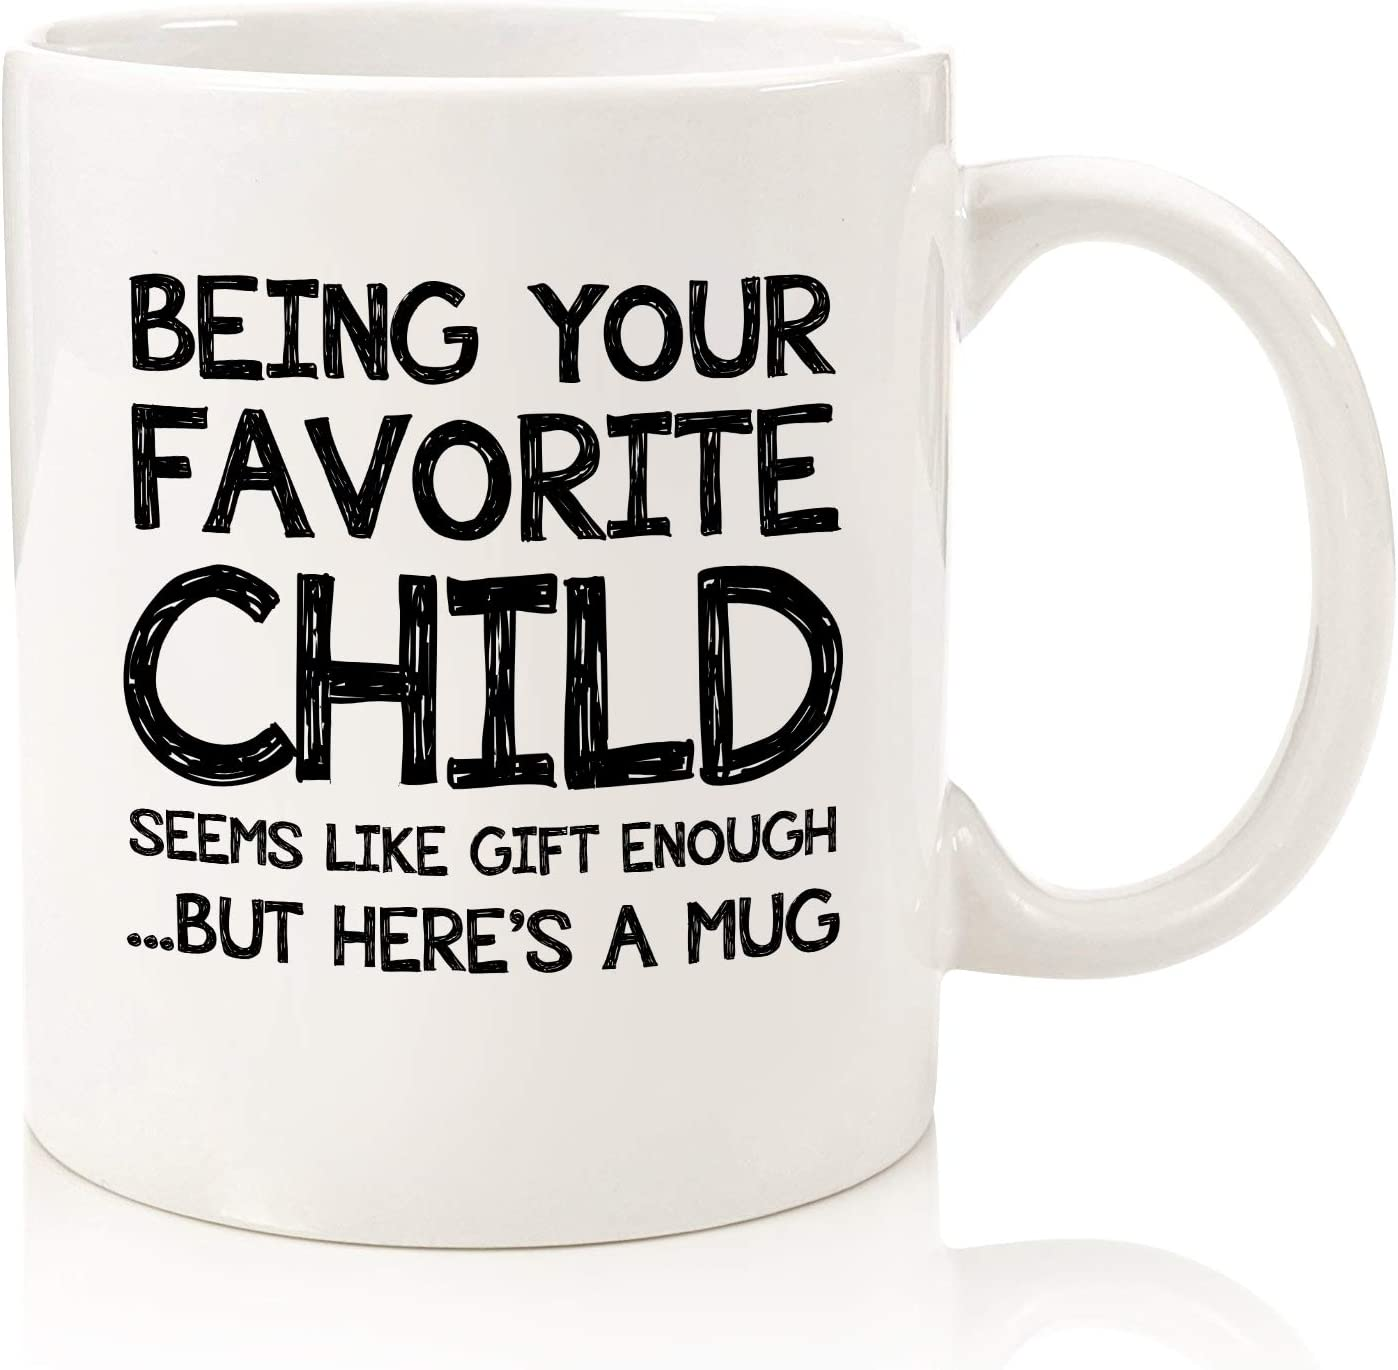 Being Your Favorite Child Funny Coffee Mug - Best Mom & Dad Gifts - Unique Gag Father's Day Gifts for Dad from Daughter, Son, Kids - Bday Present Idea for Parents - Fun Novelty Cup for Men, Women